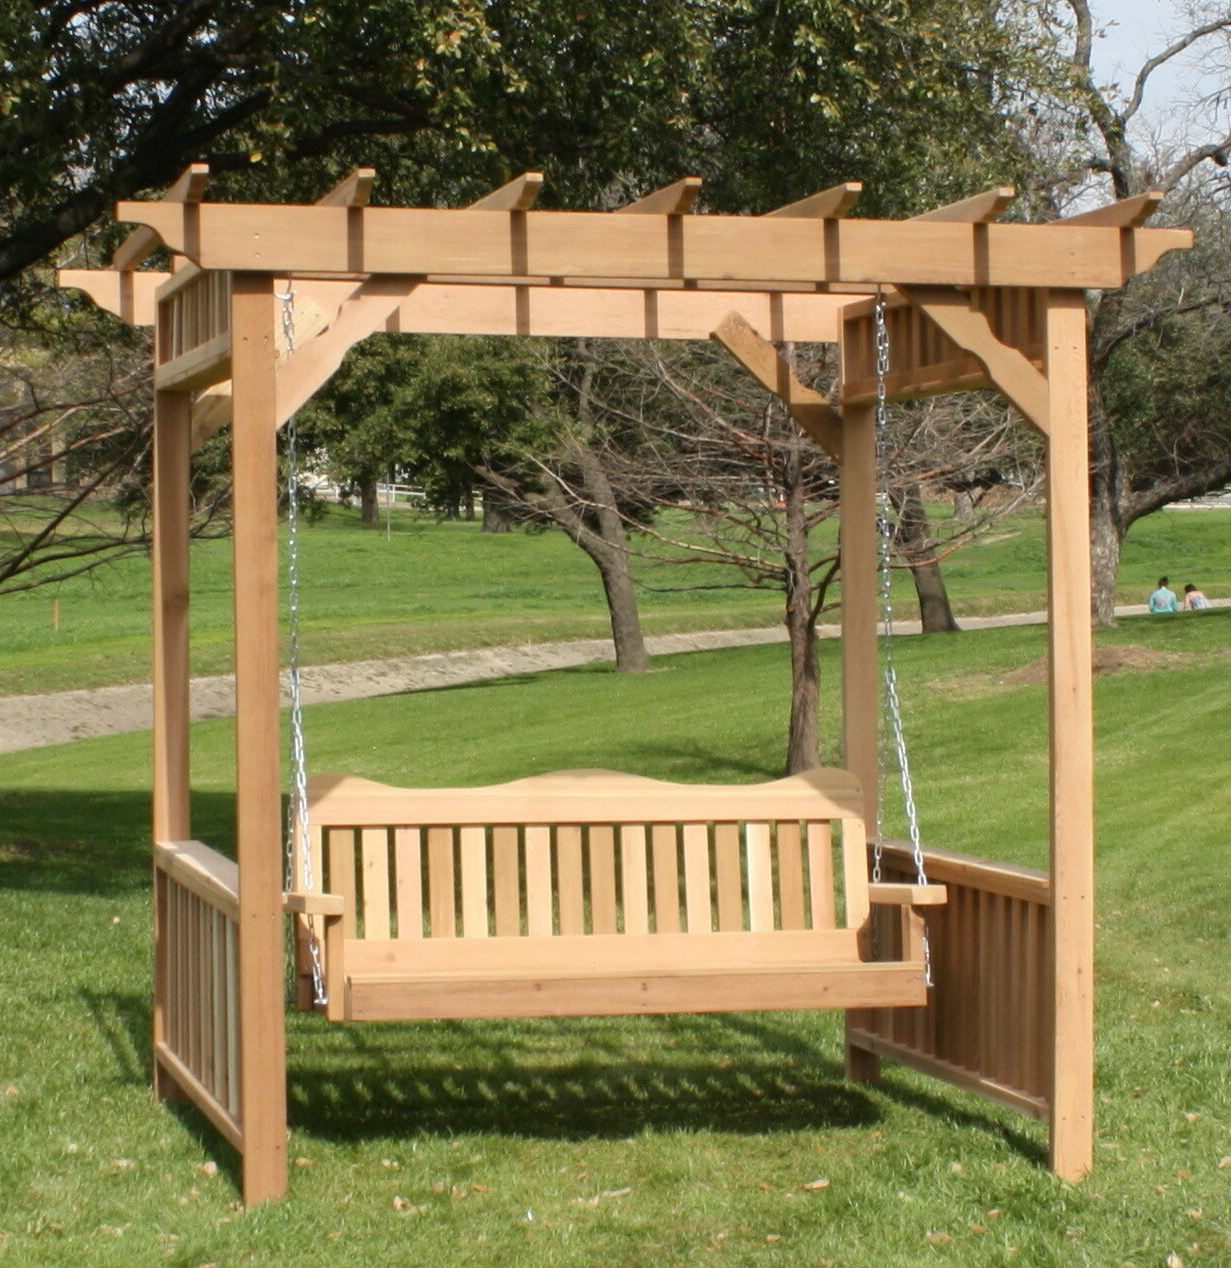 Thayer Cedar Arbor Porch Swing With Stand Intended For Trendy Pergola Porch Swings With Stand (View 23 of 30)